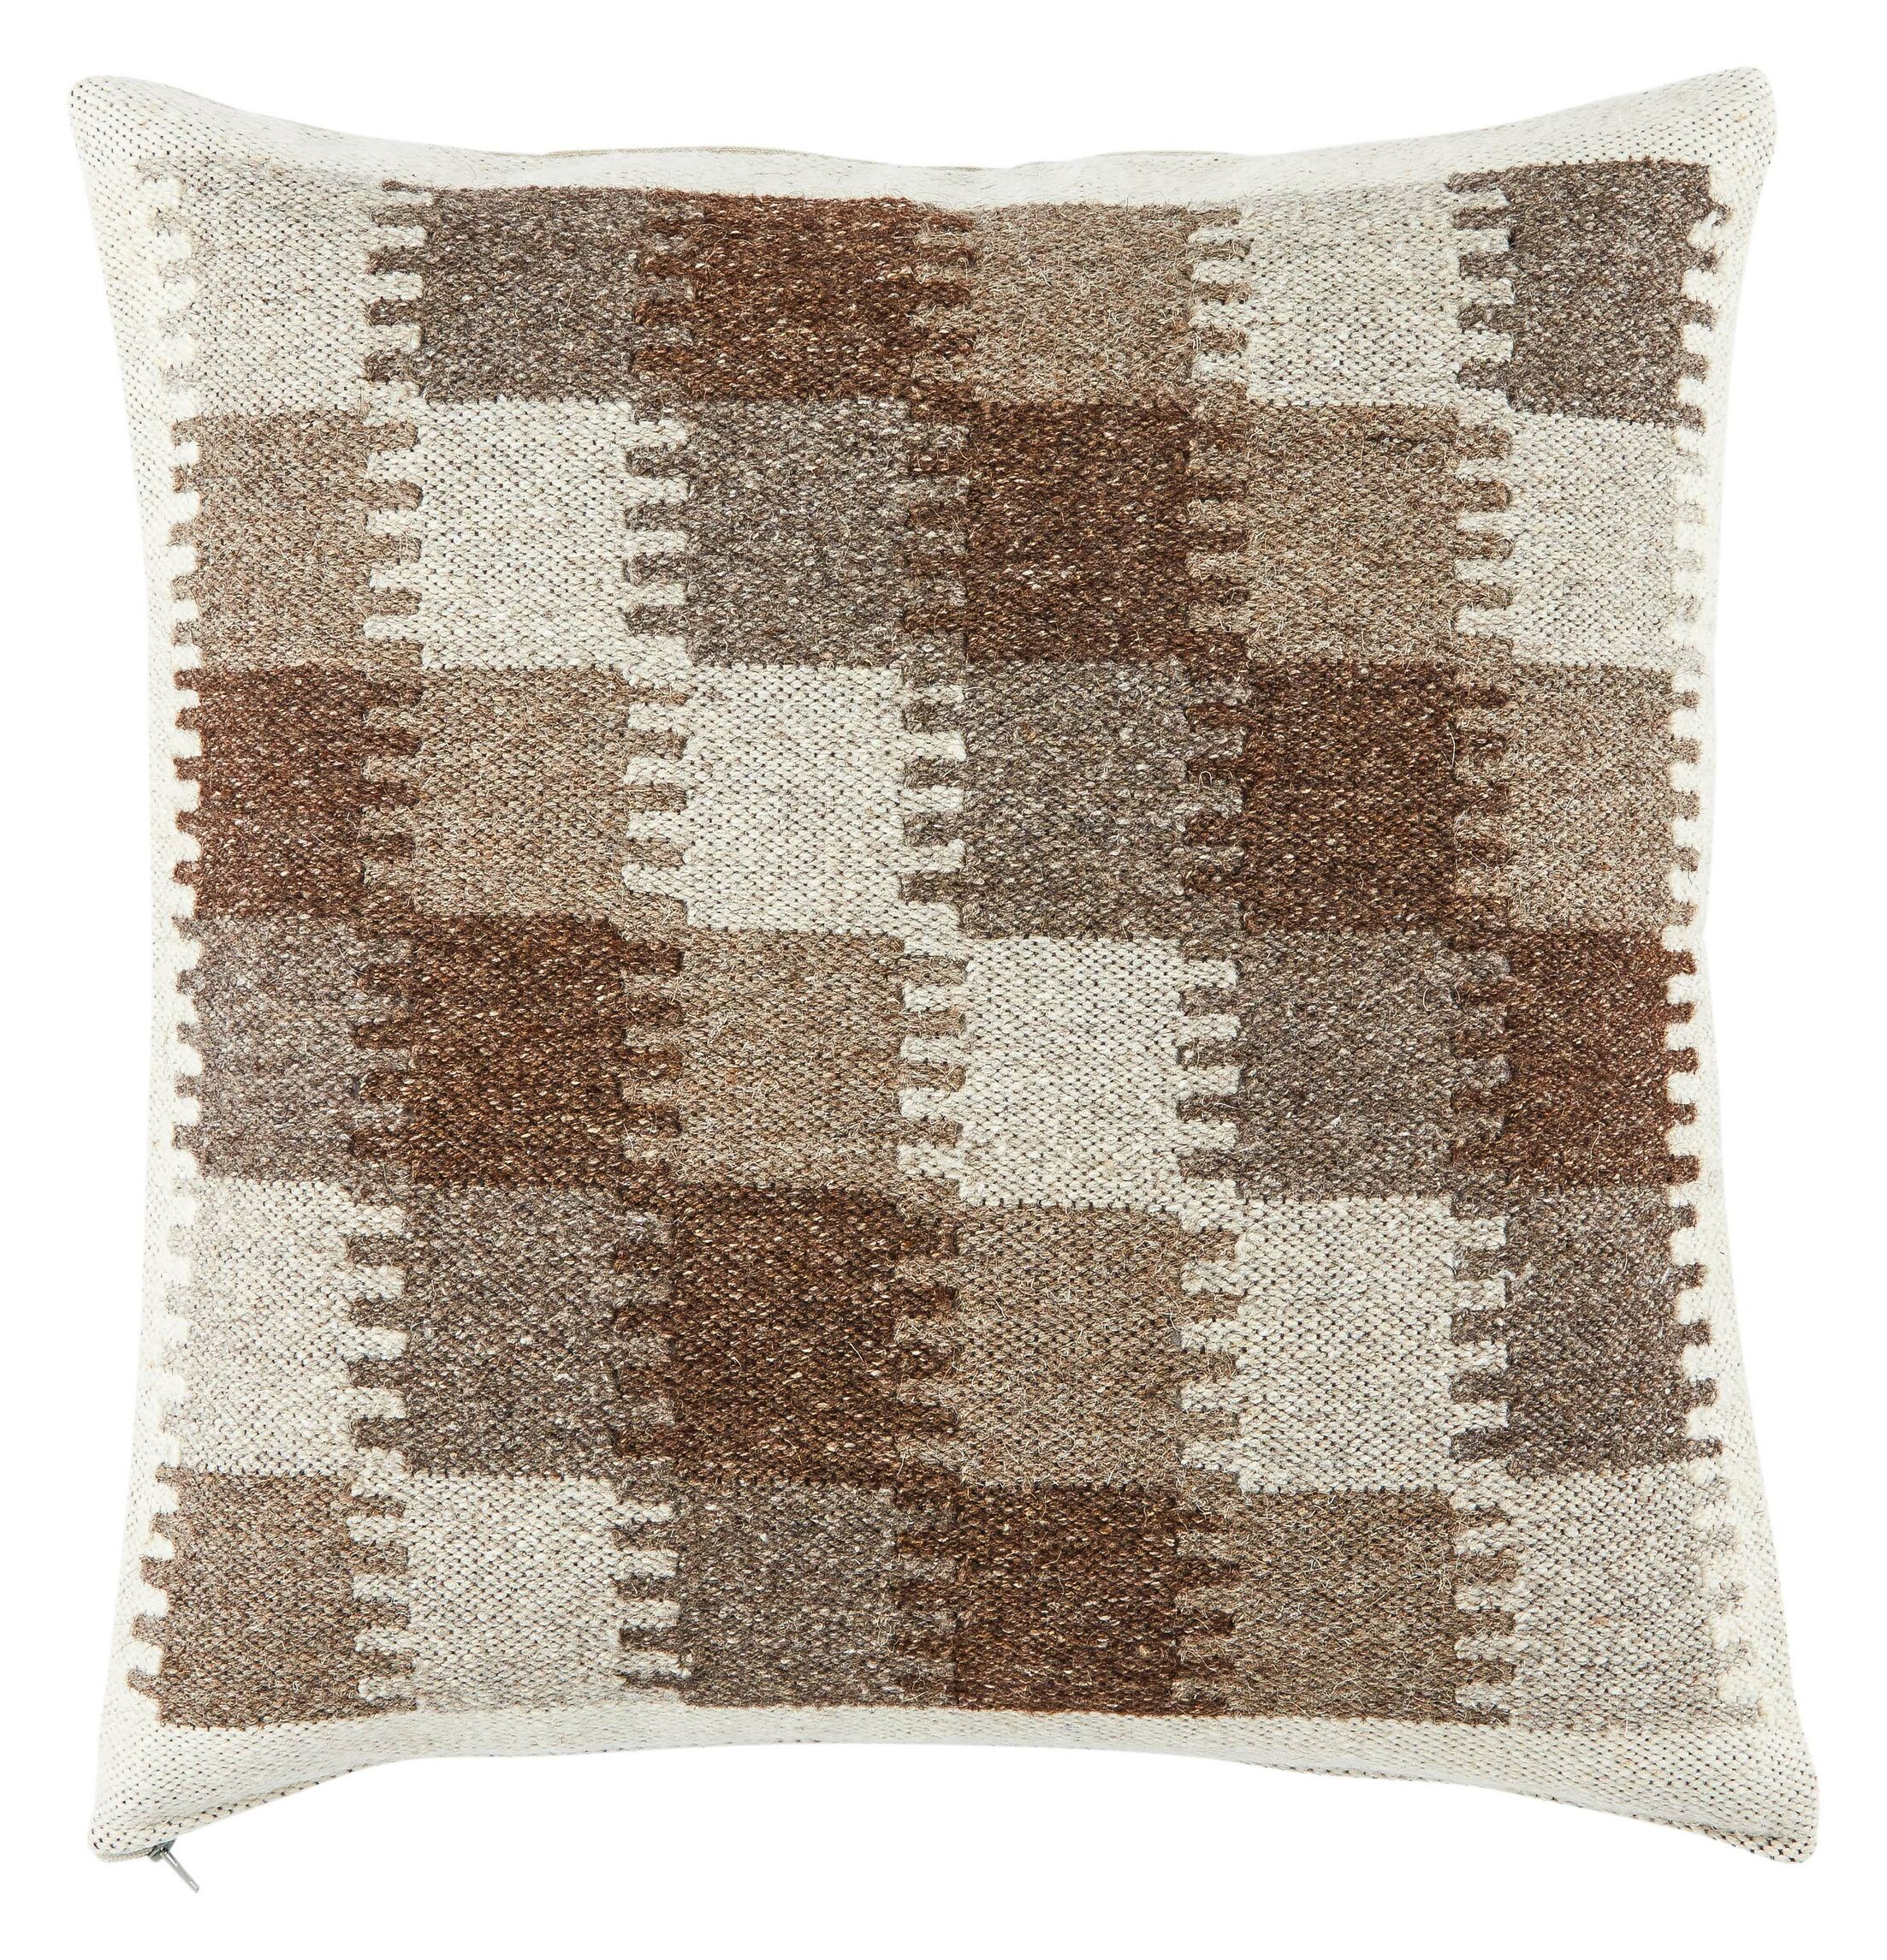 Burnley Throw Pillow Color: Gray/Taupe, Fill Material: Down/Feather